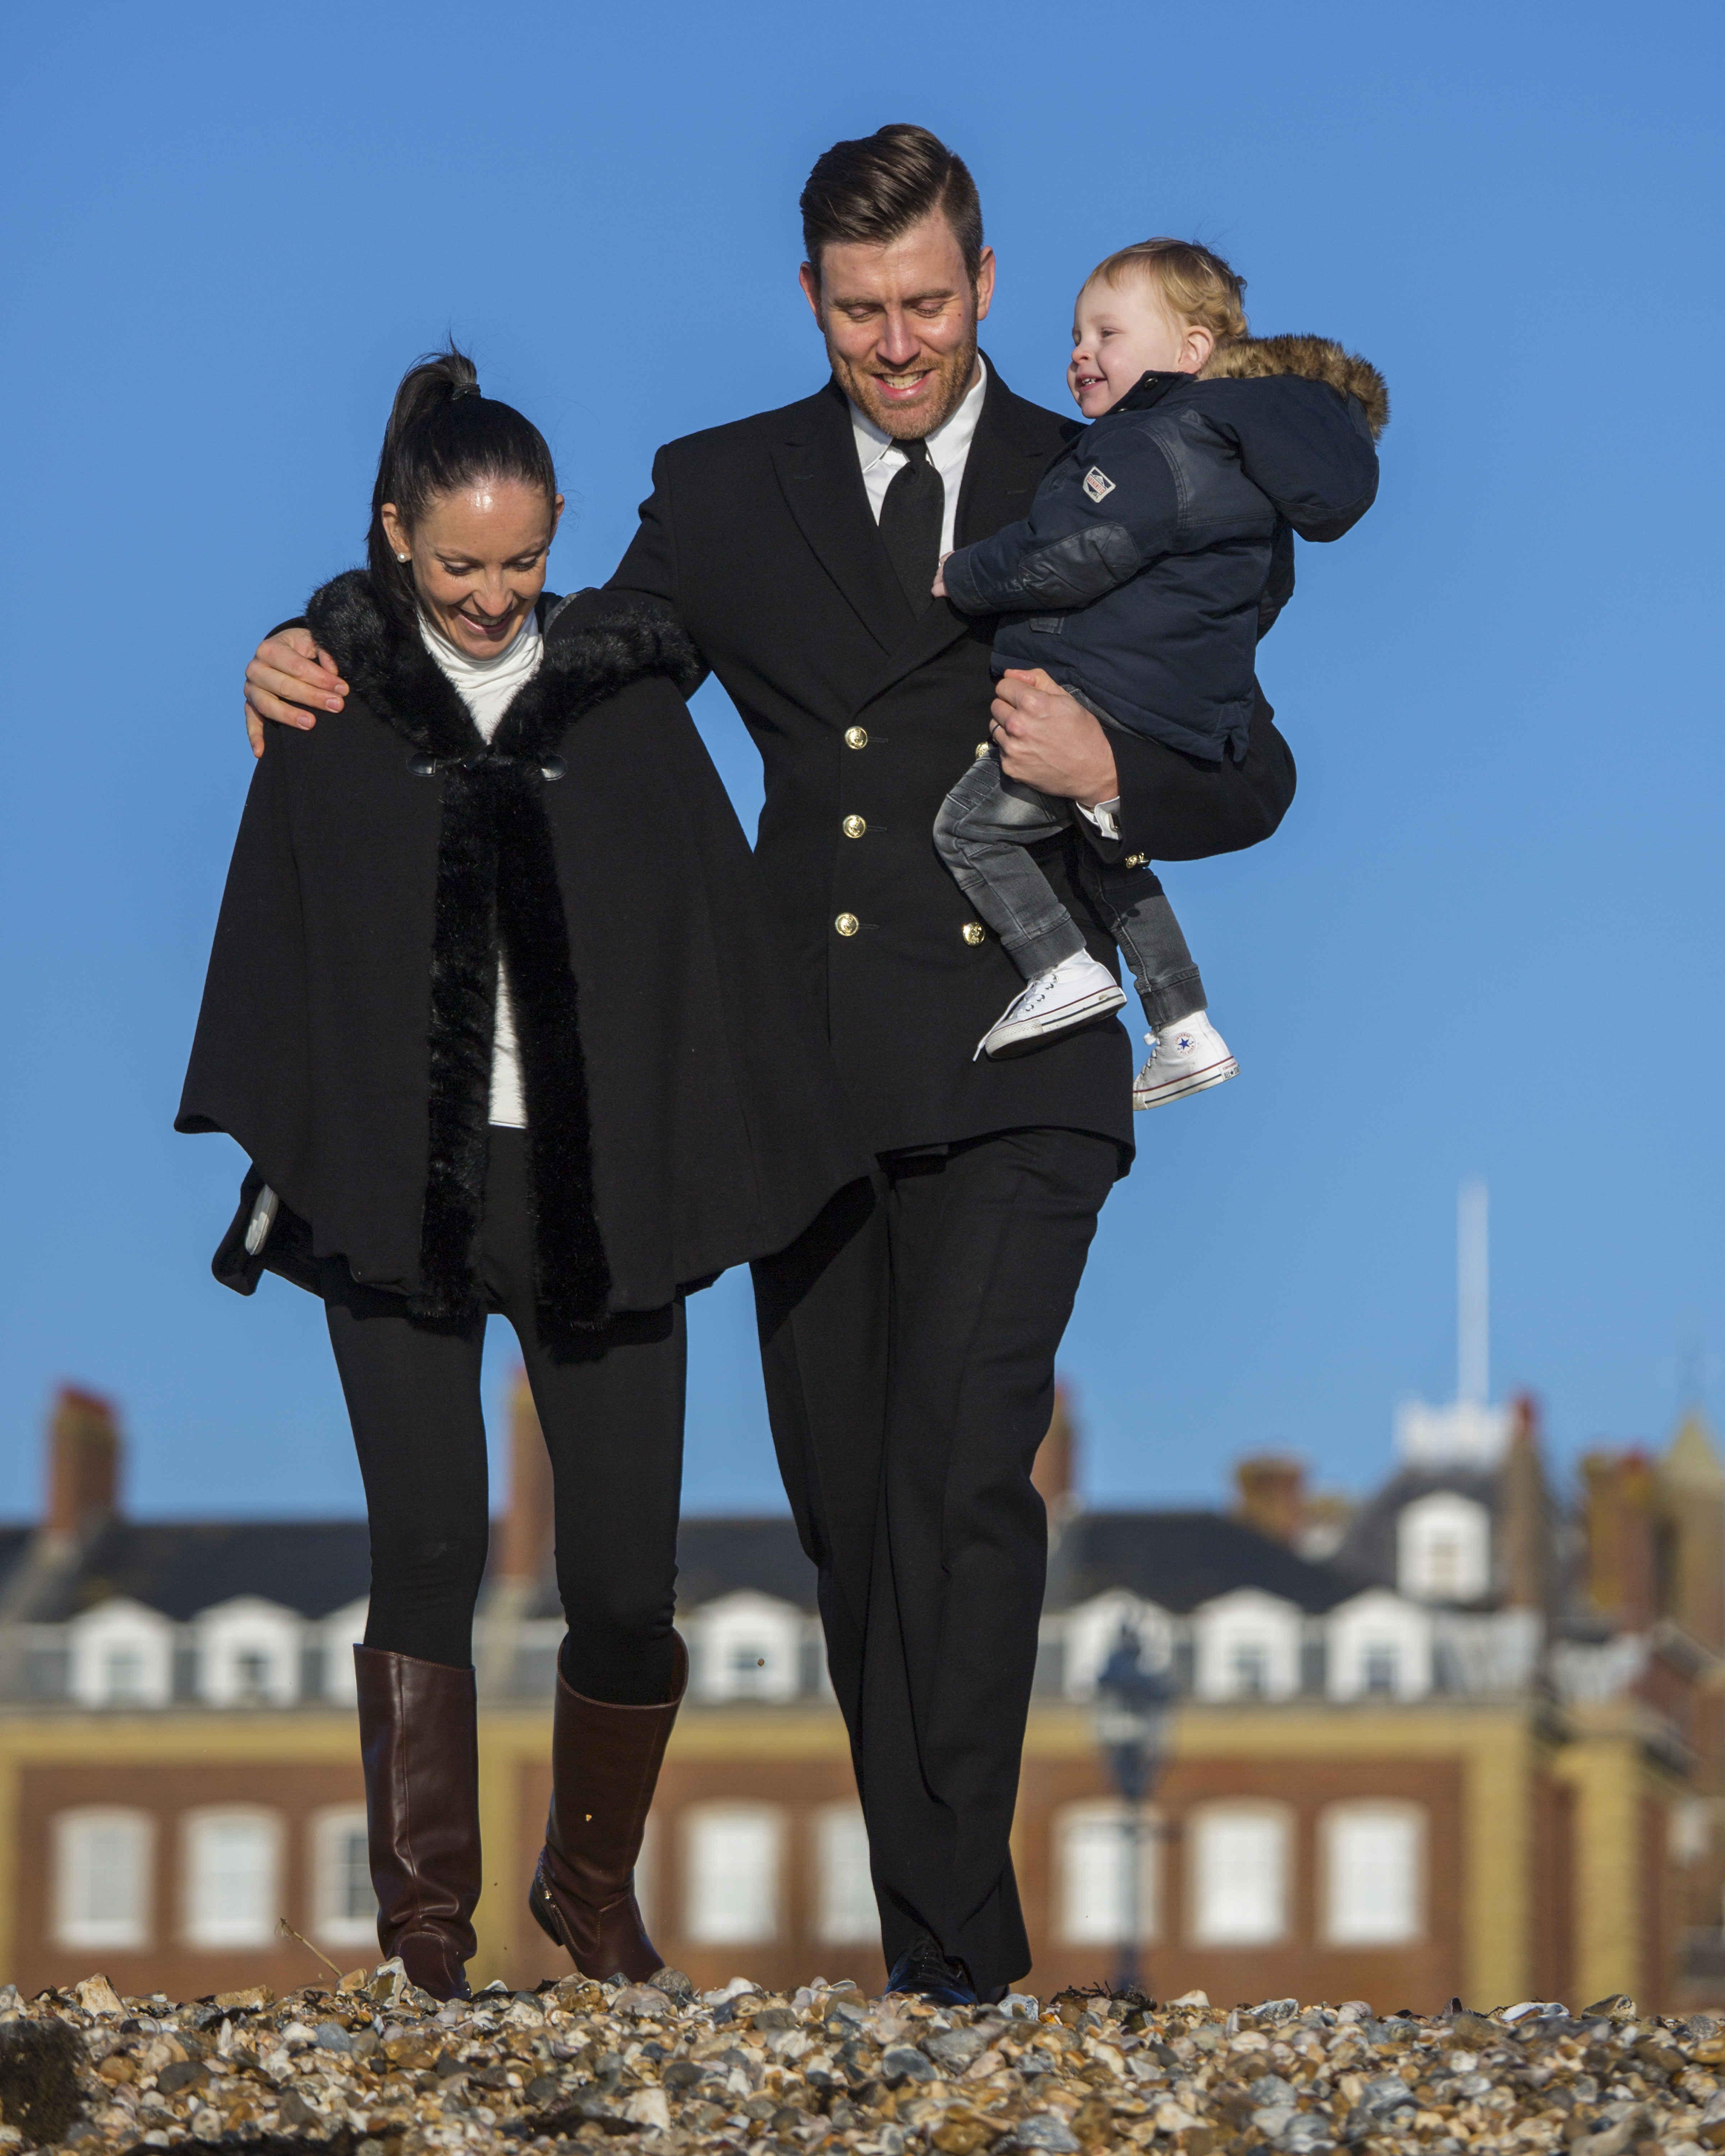 Images Of PO PT Jamie Stickley And His Family - Friday 15 Jan 2016  Images of POPT Jamie Stickley with his family in Portsmouth. Josey and Parker along with Jamie all gave consent and forms held at DDC.